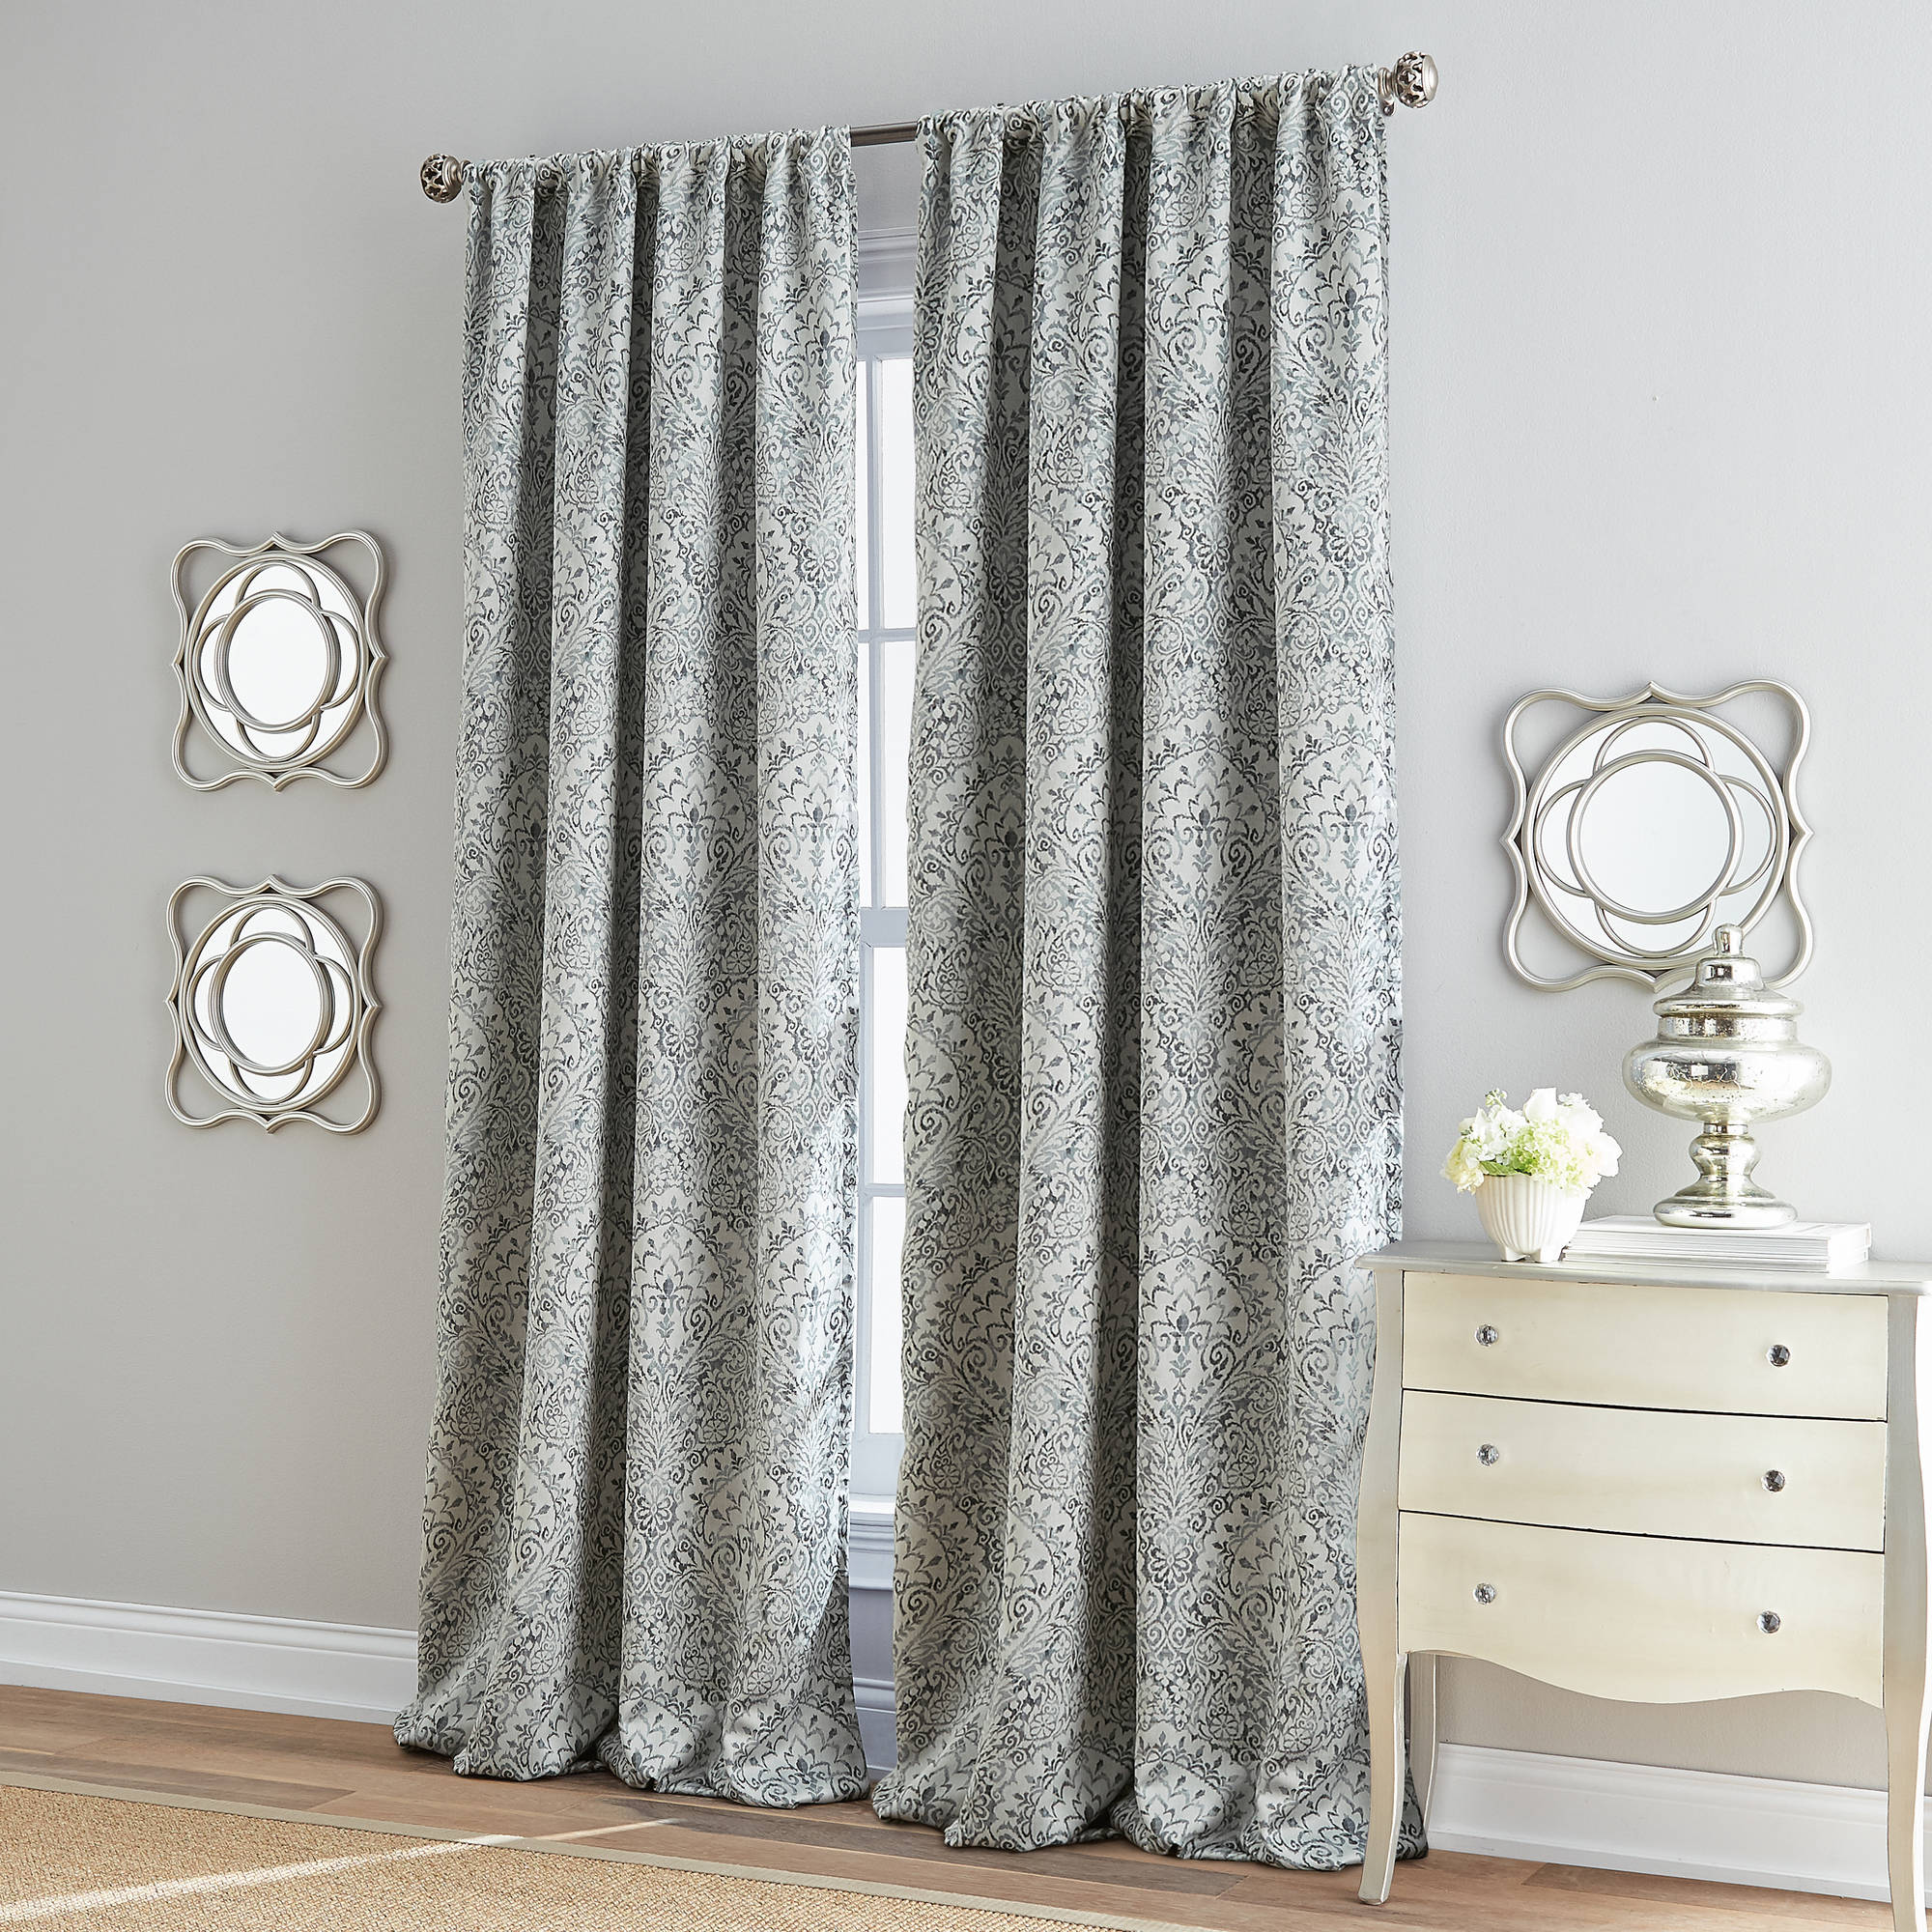 Damask Marlena Poletop Lined Room Darkening Curtain